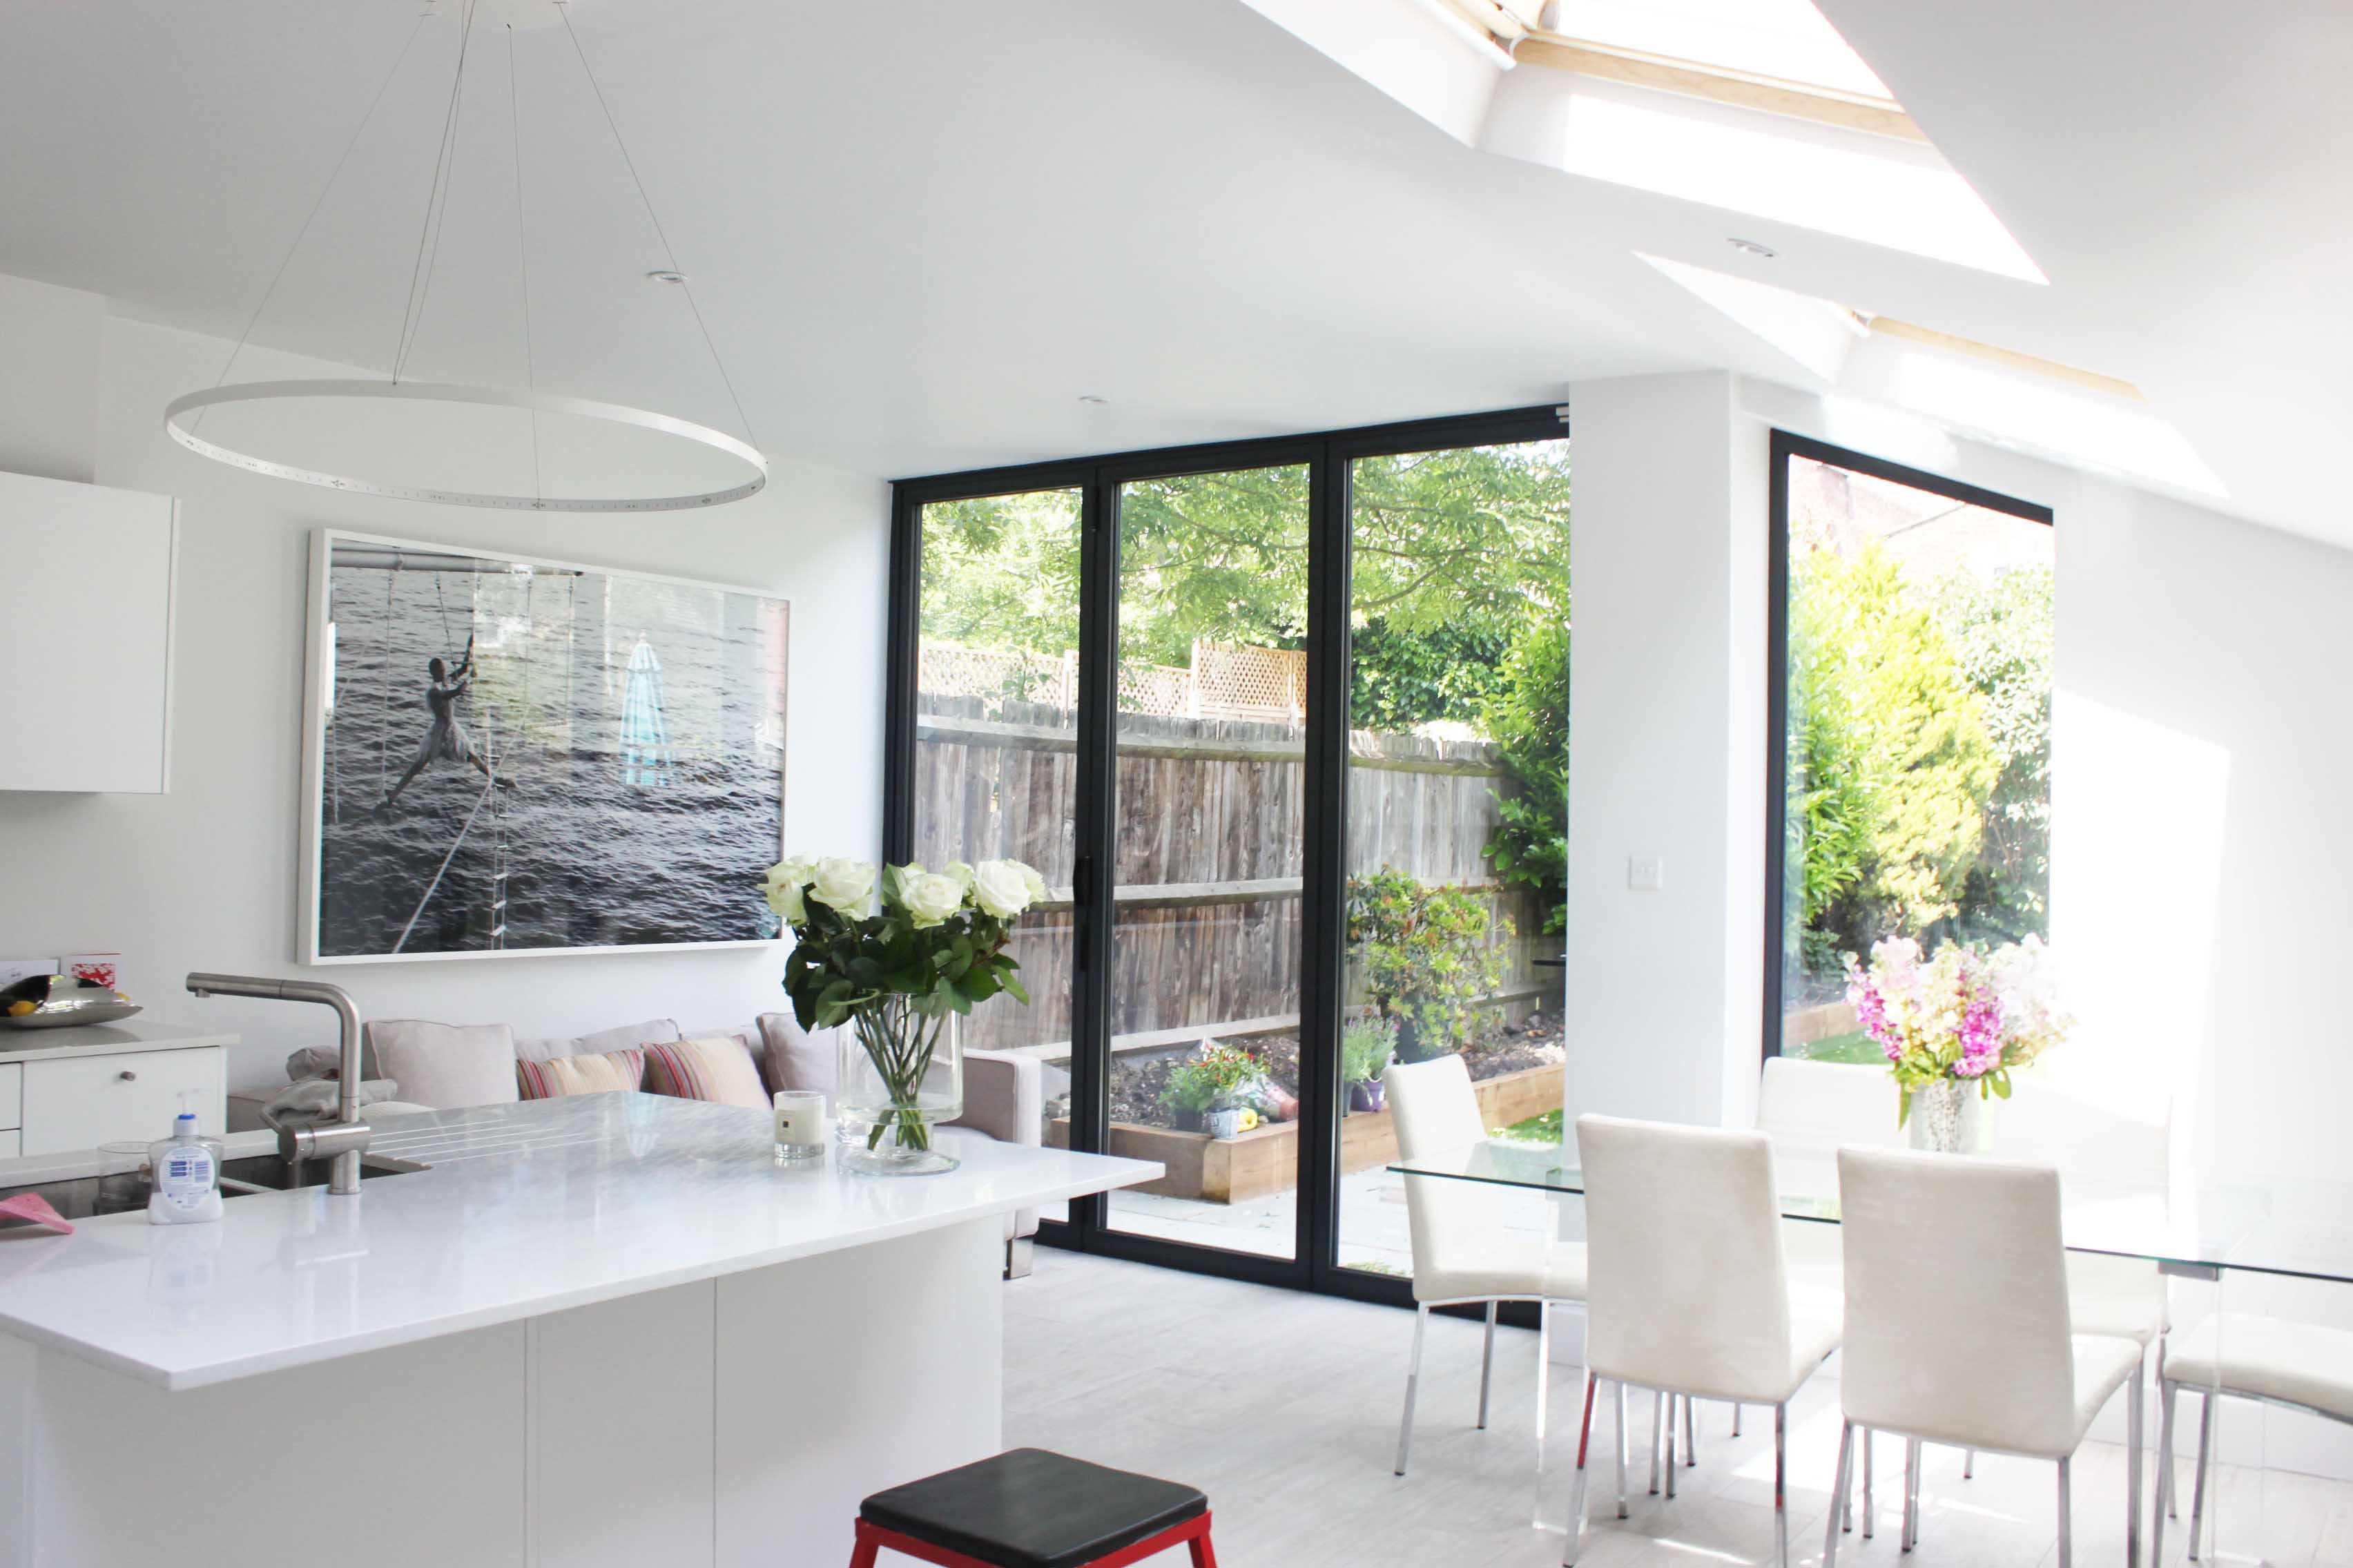 Find your ideal home design pro on designfor-me.com - get matched and see who's interested in your home project. Click image to see more inspiration from our design pros     Design by Joe, architect from Haringey, London #architecture #homedesign #modernhomes #homeinspiration #kitchens #kitchendesign #kitcheninspiration #kitchenideas #kitchengoals #extensions #extensiondesign #minimalistarchitecture #minimalistdecor #minimalistdesign #miminalism